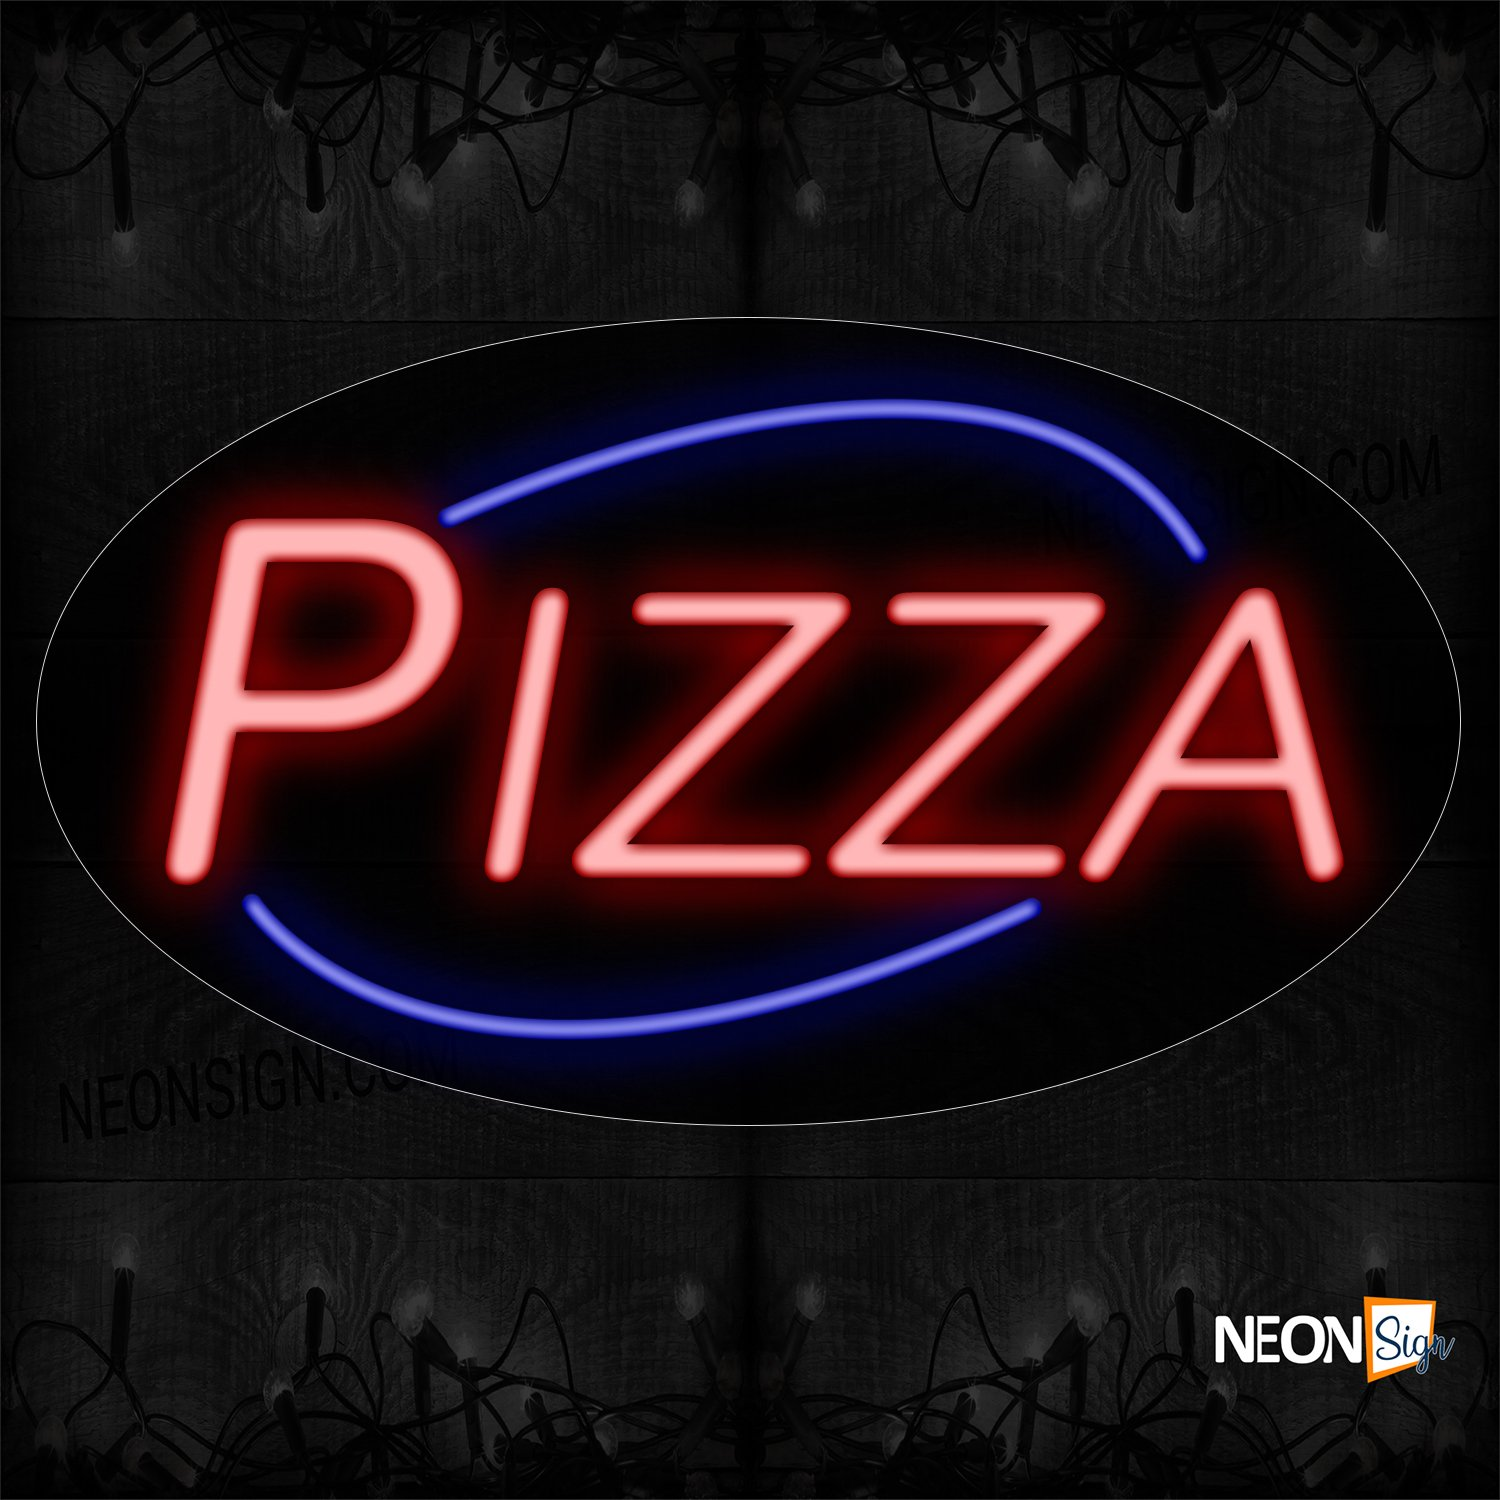 Image of 14068 Pizza In Red With Blue Arc Border Neon Sign_17x30 Contoured Black Backing